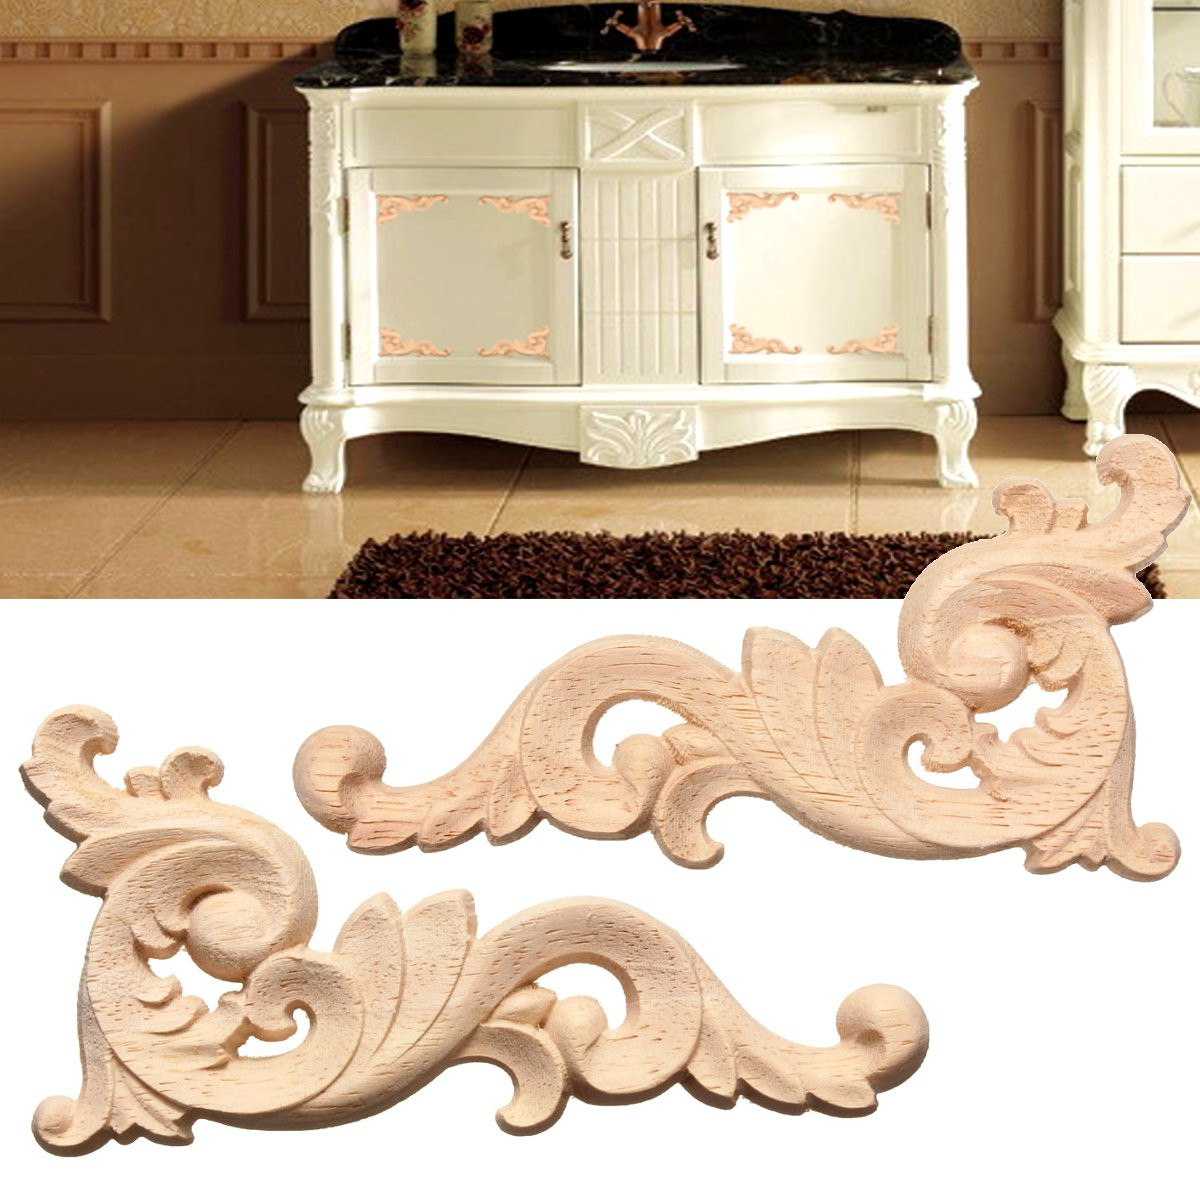 Decorative-Figurines Furniture Door-Decorate Decal-Corner Applique-Frame Wall-Doors Woodcarving